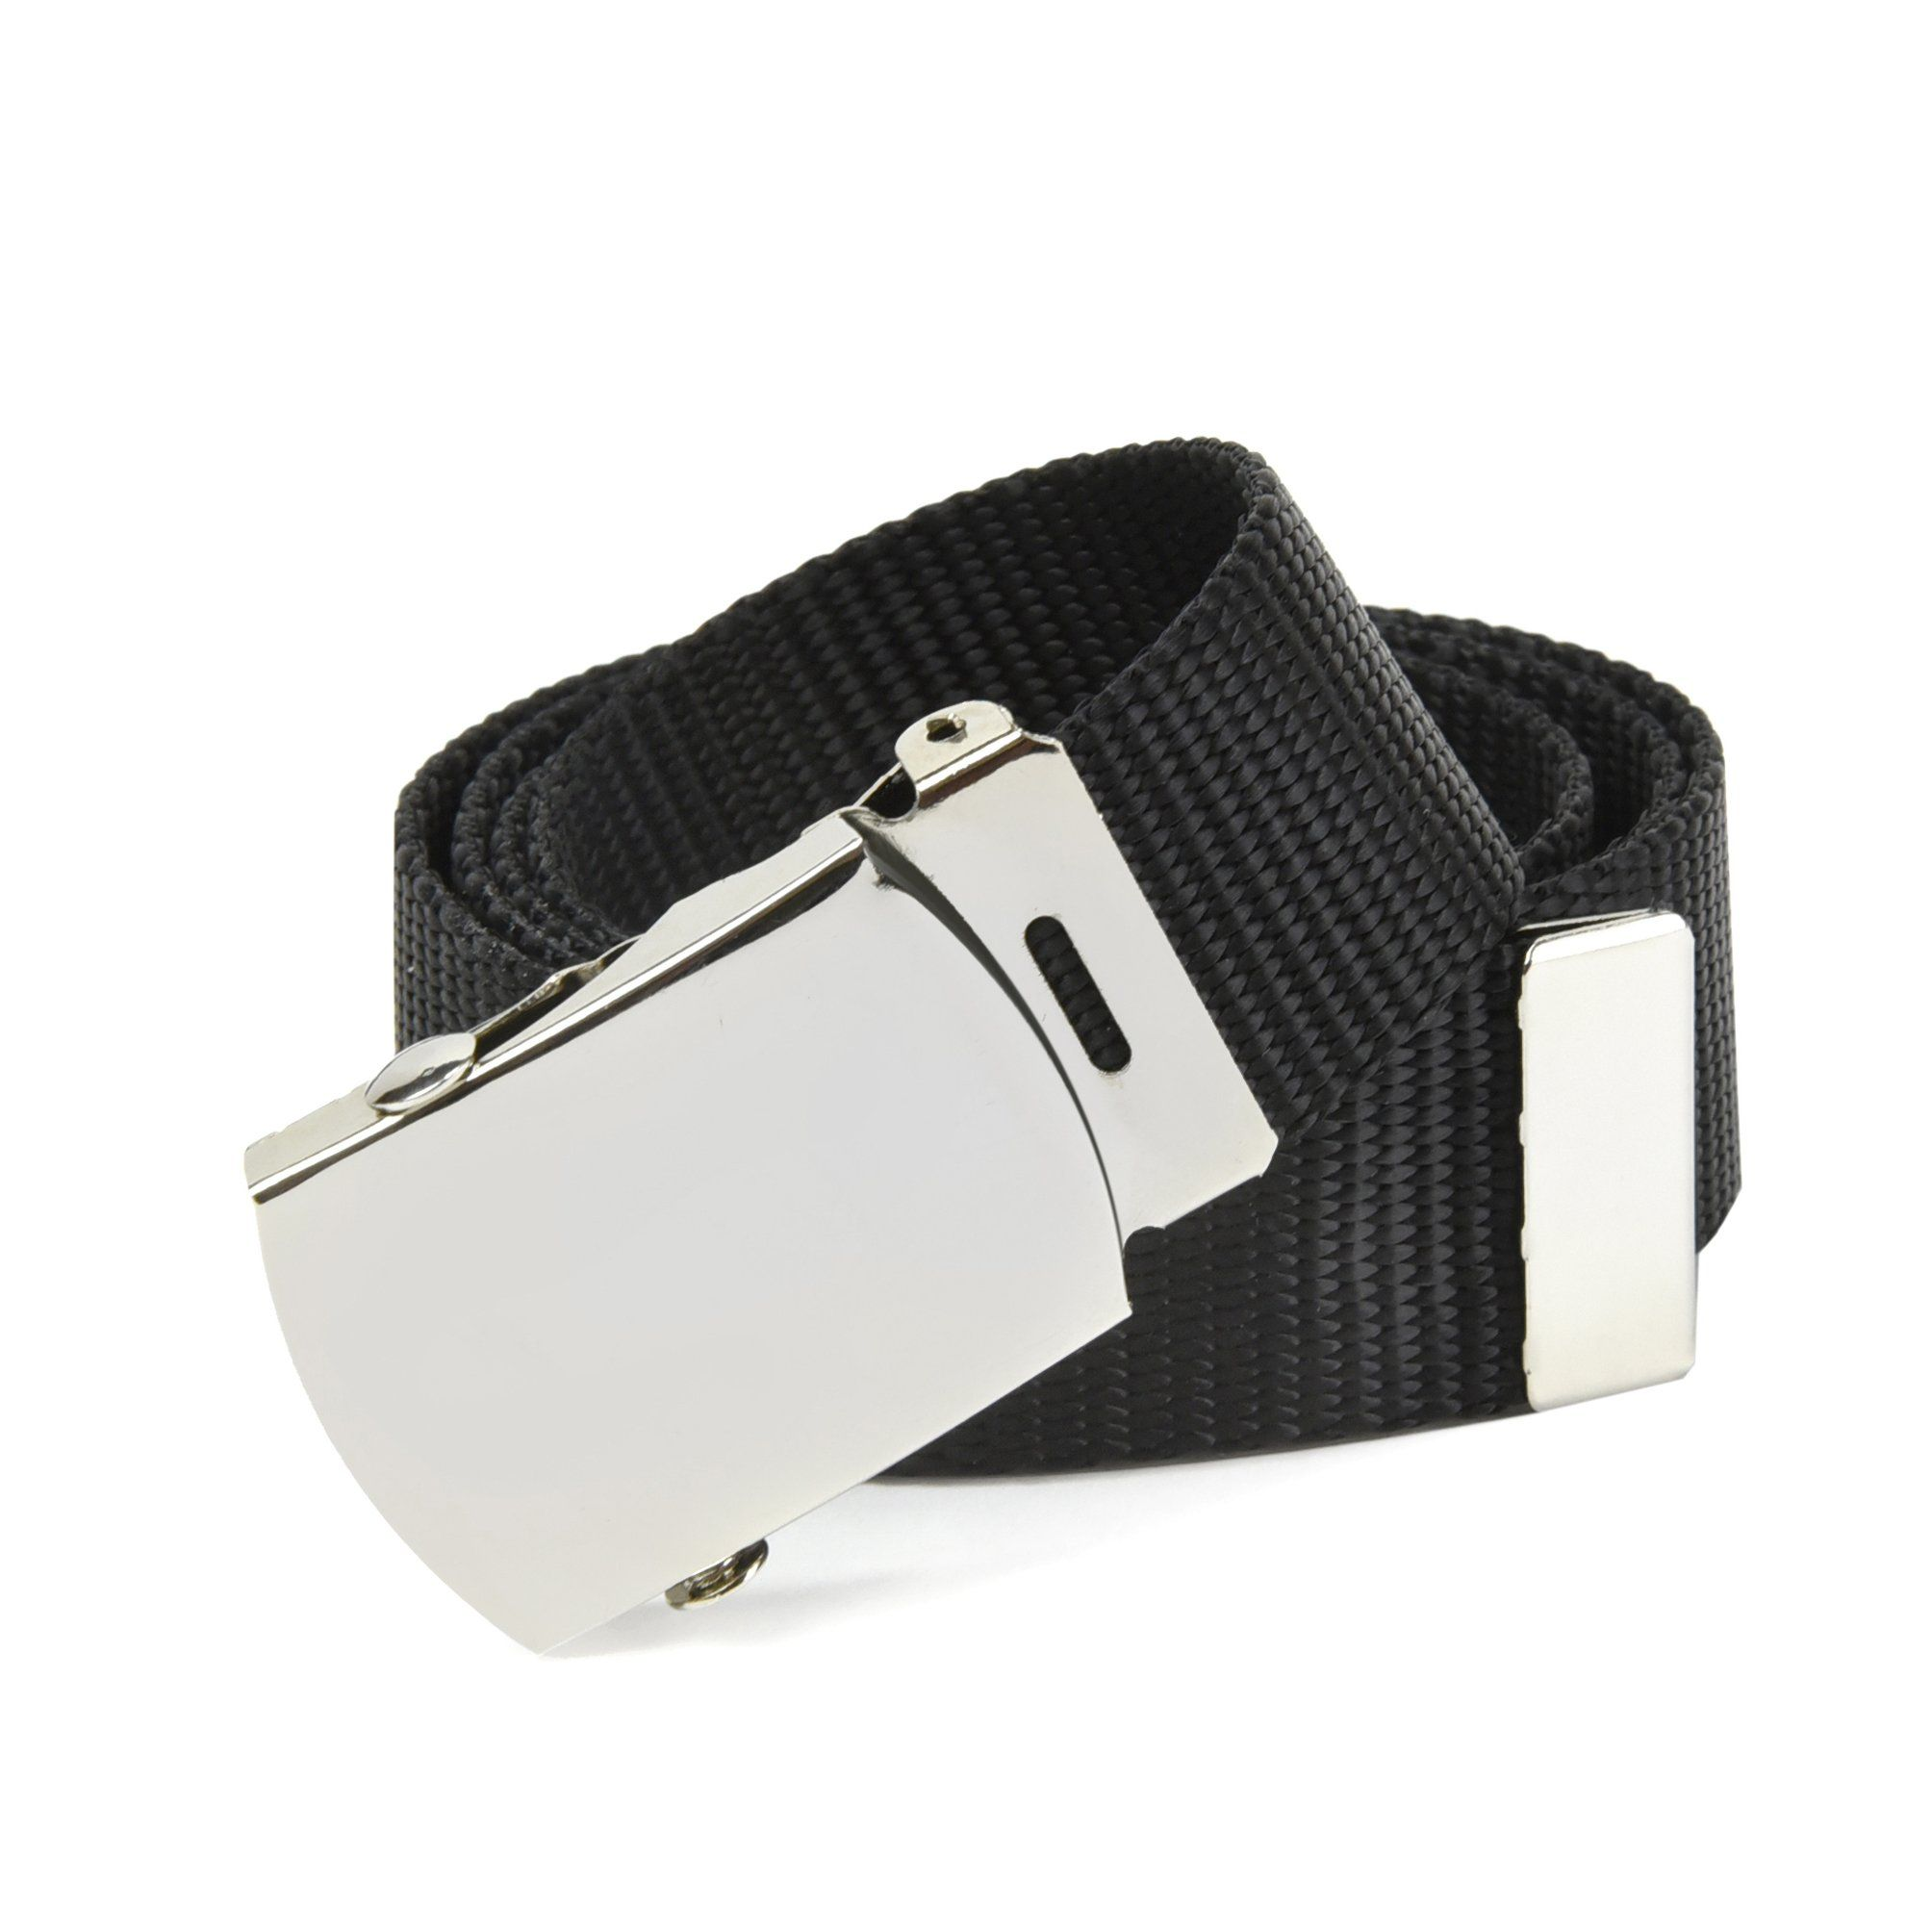 Pin on Belts, Accessories, Girls